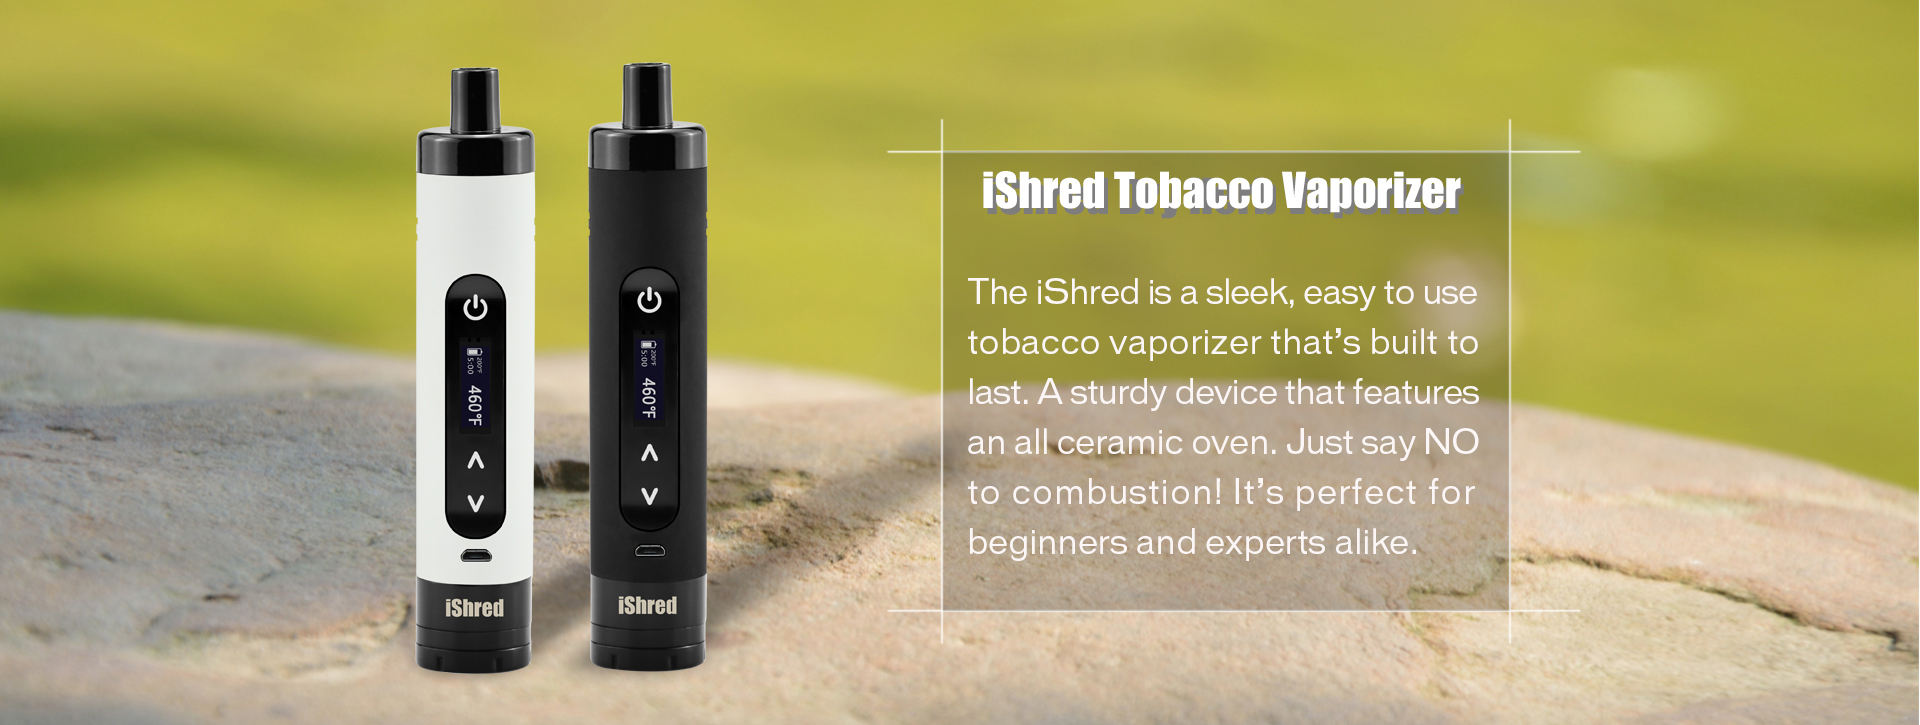 Yocan iShred is a sleek, easy to use tobacco vaporizer that's built to last.